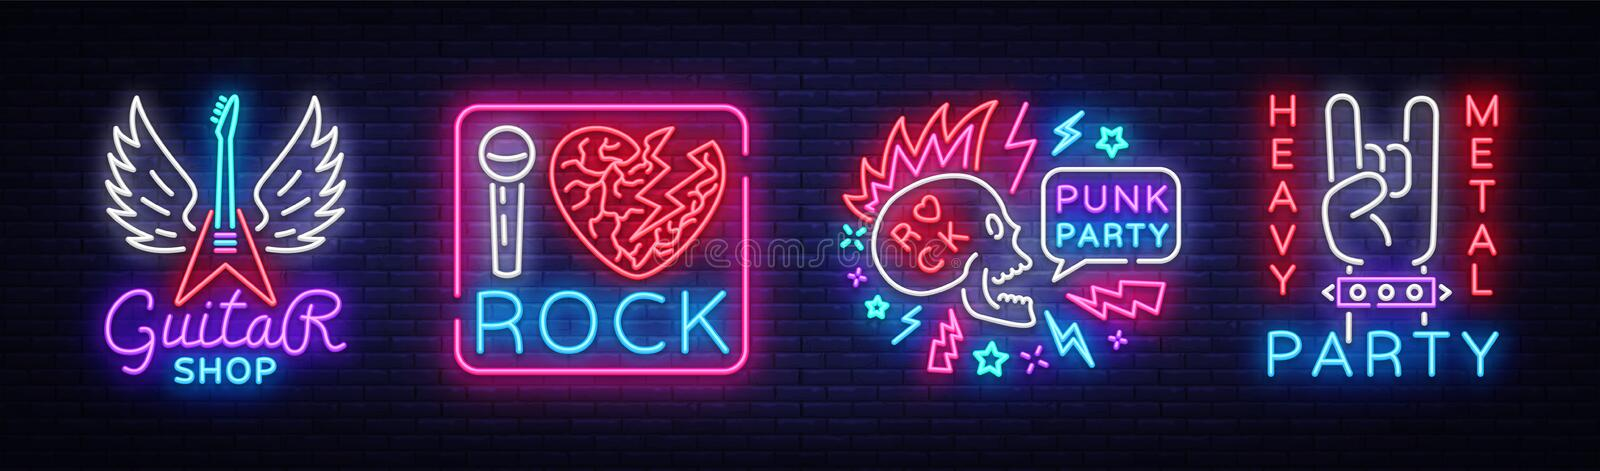 Rock Music collection Neon Signs Vector. Rock music set logos, Guitar Shop, night neon signboard, design element stock illustration